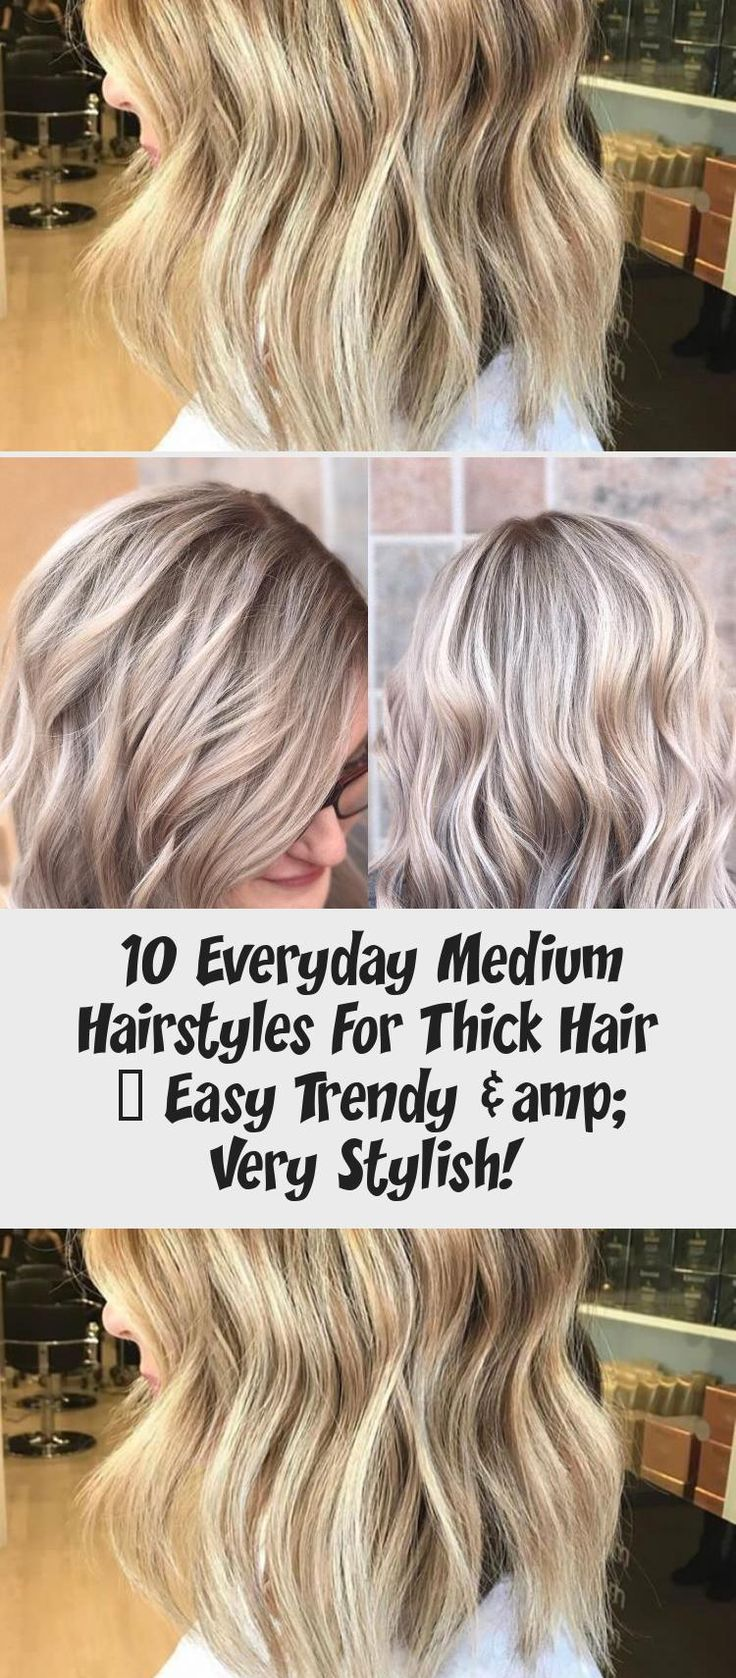 what is the best hairstyle for thick coarse hair